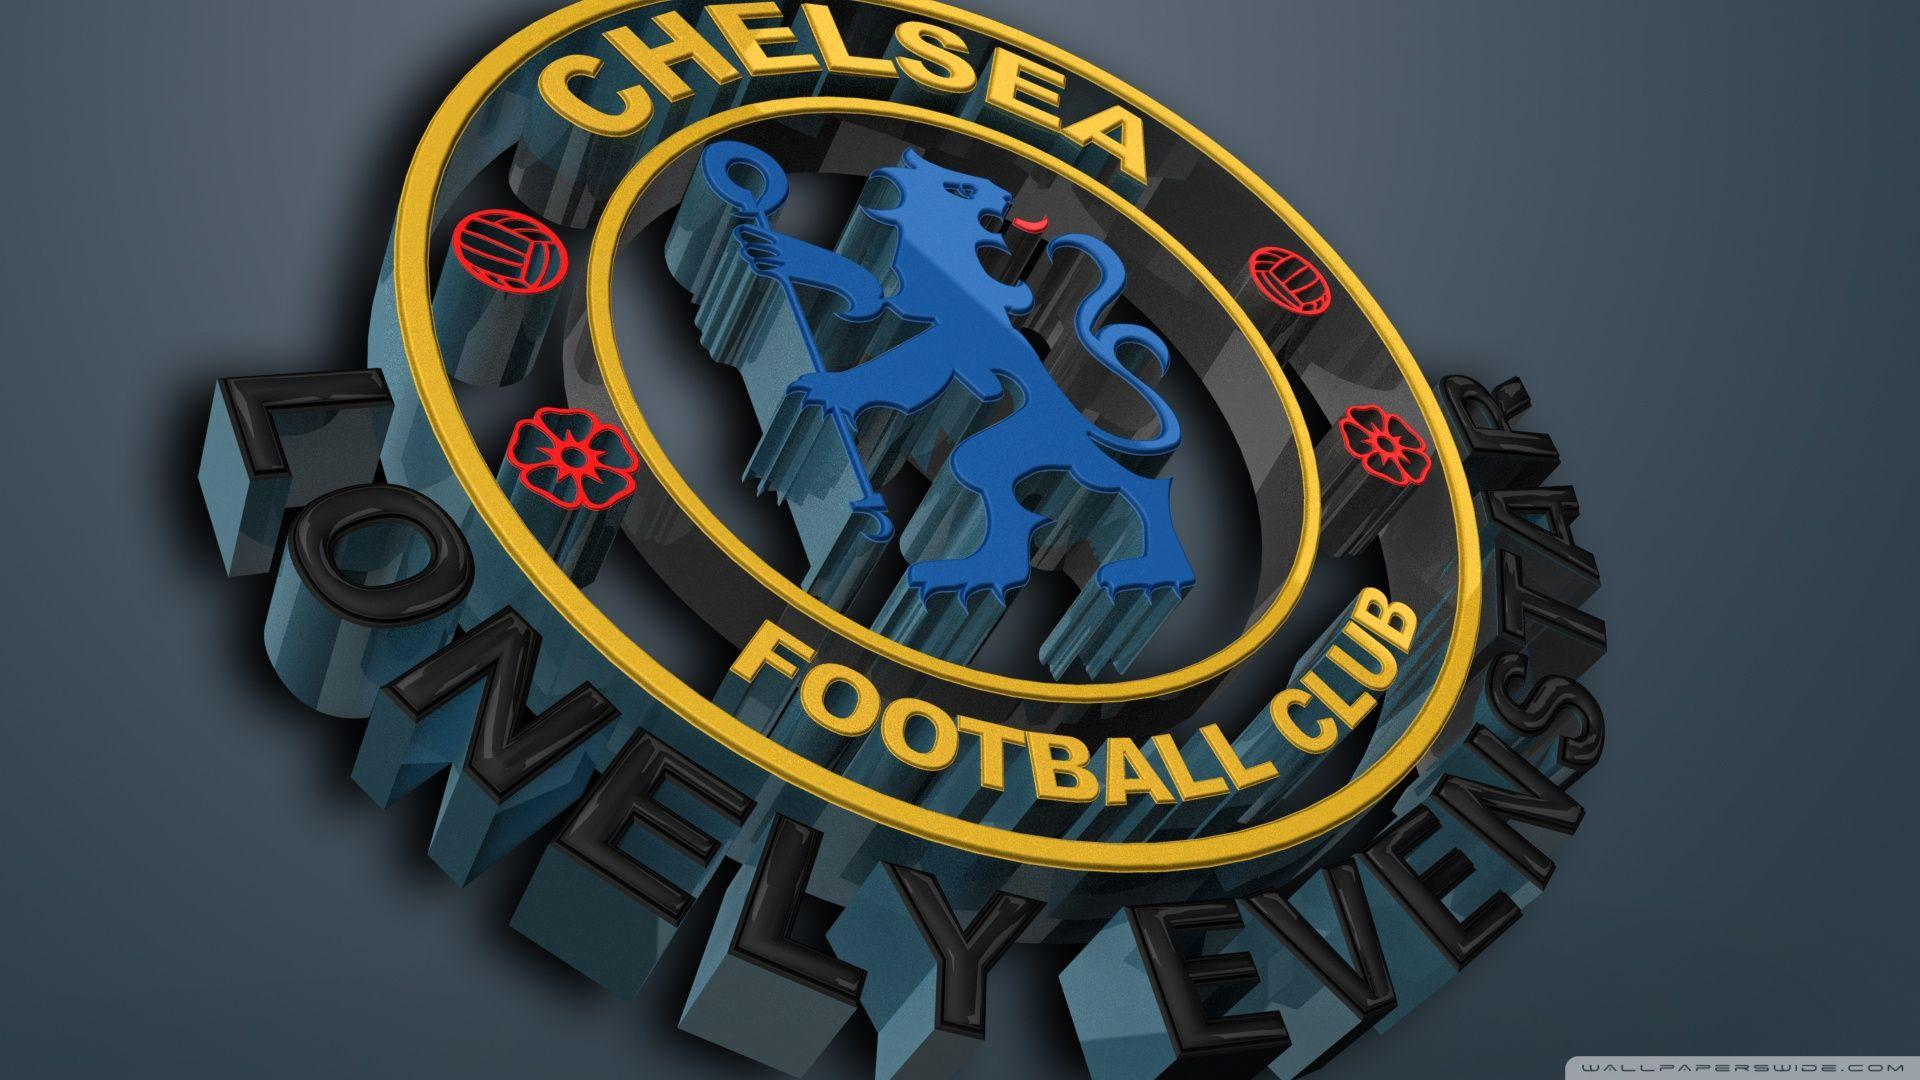 Chelsea Fc 3d Wallpapers